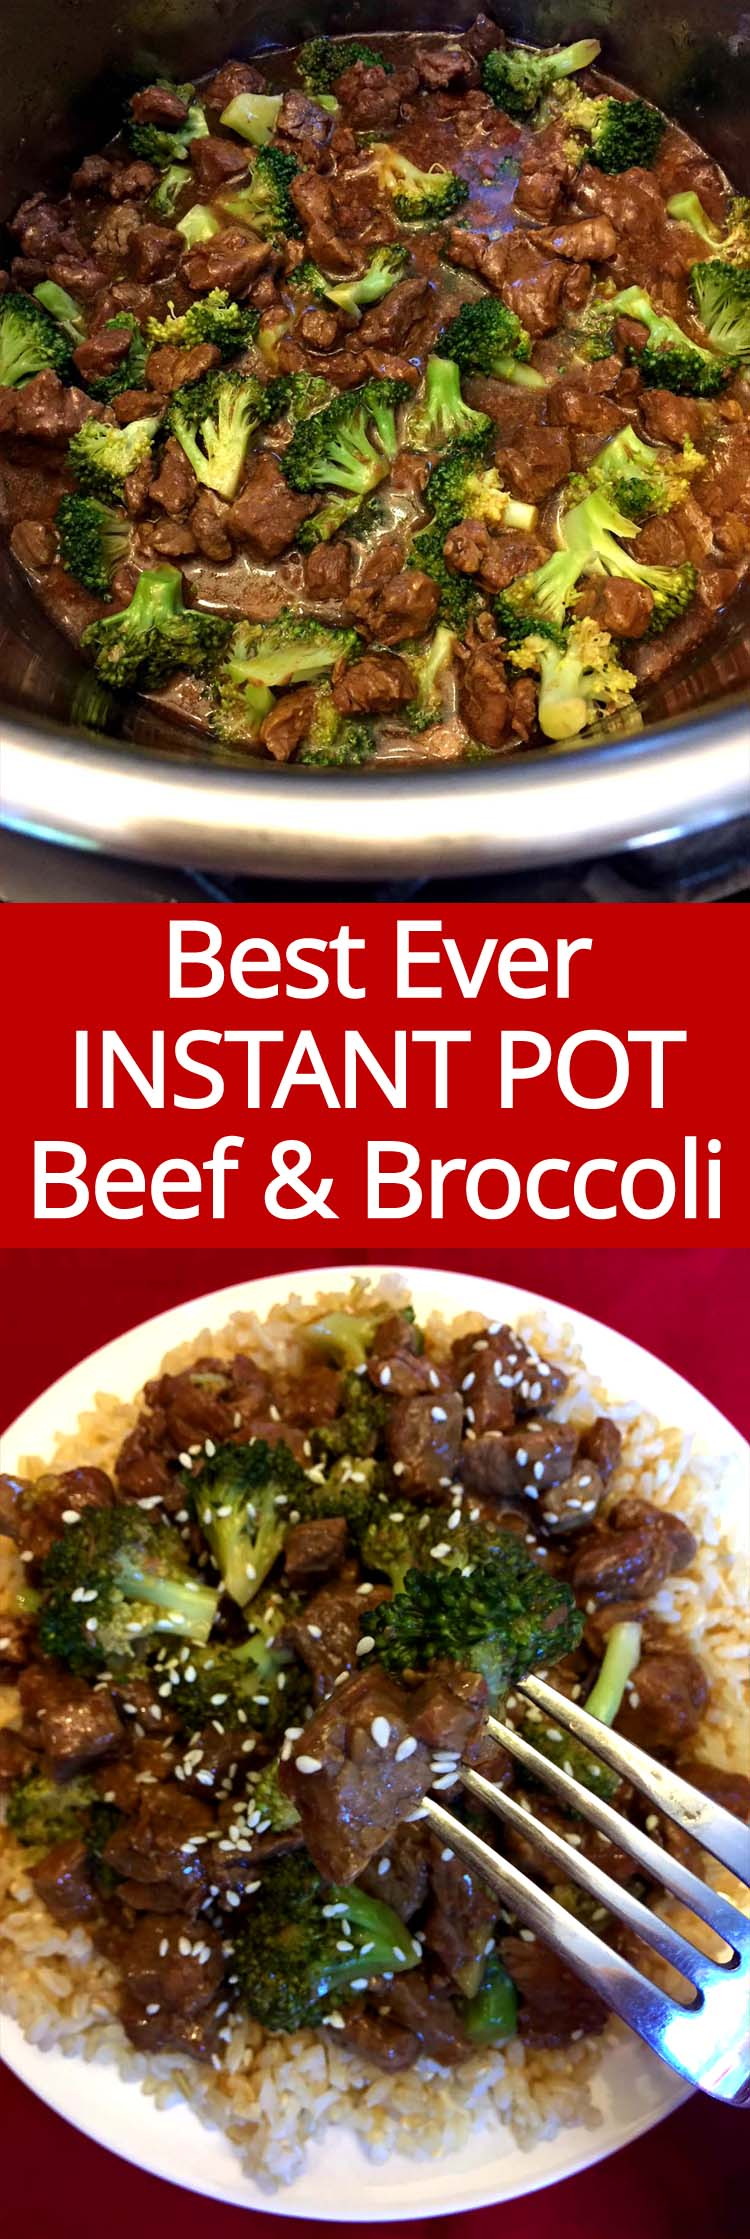 This Instant Pot beef and broccoli is a keeper! So easy to make and tastes exactly like Chinese takeout!